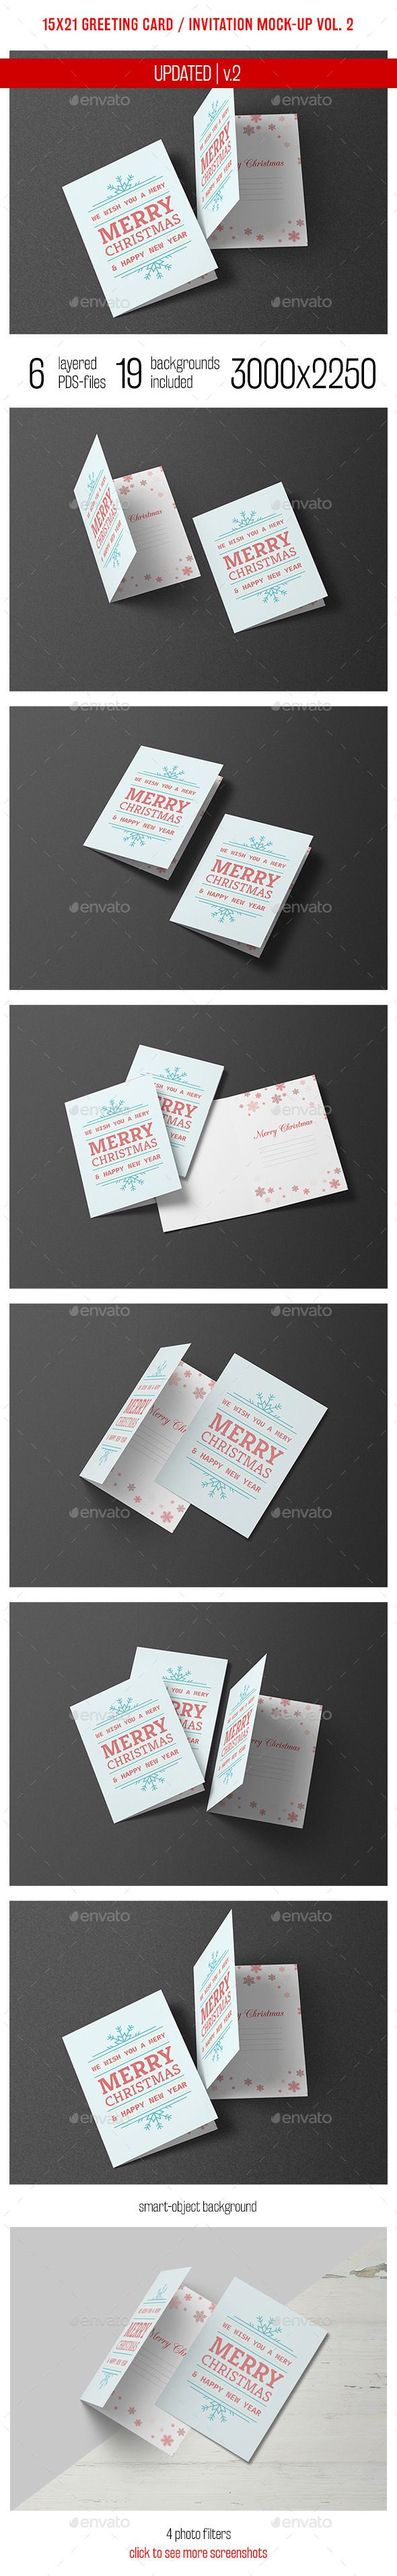 Greeting Card and Invitation Mockup Vol. 2 — Photoshop PSD #mock up #invitation • Available here → https://graphicriver.net/item/greeting-card-and-invitation-mockup-vol-2/9273315?ref=pxcr